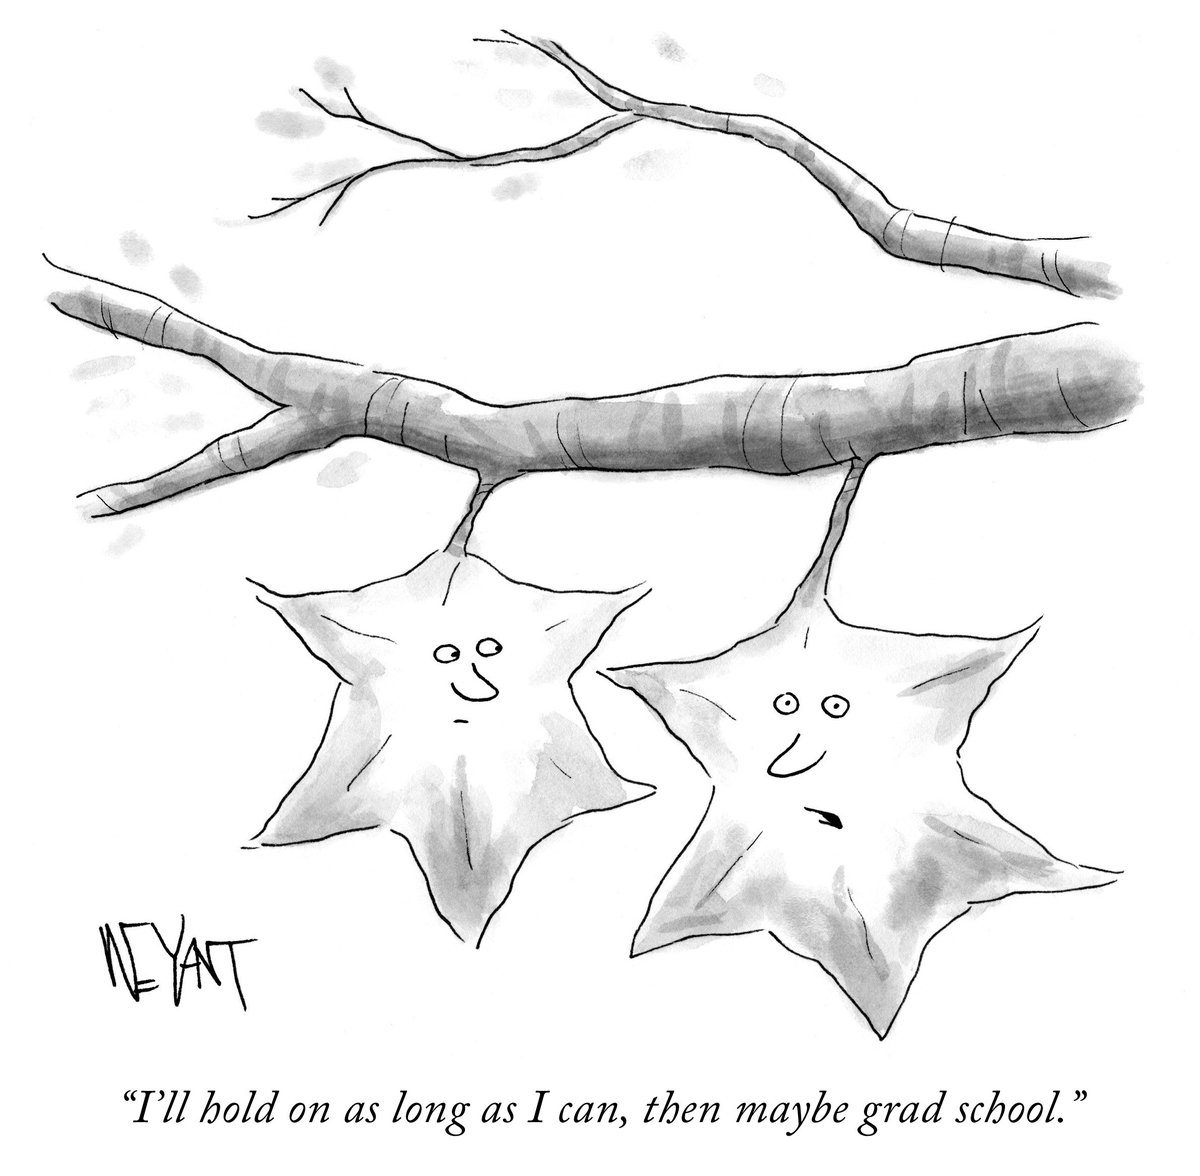 RT @NewYorker: The leaves are in their late 20s.